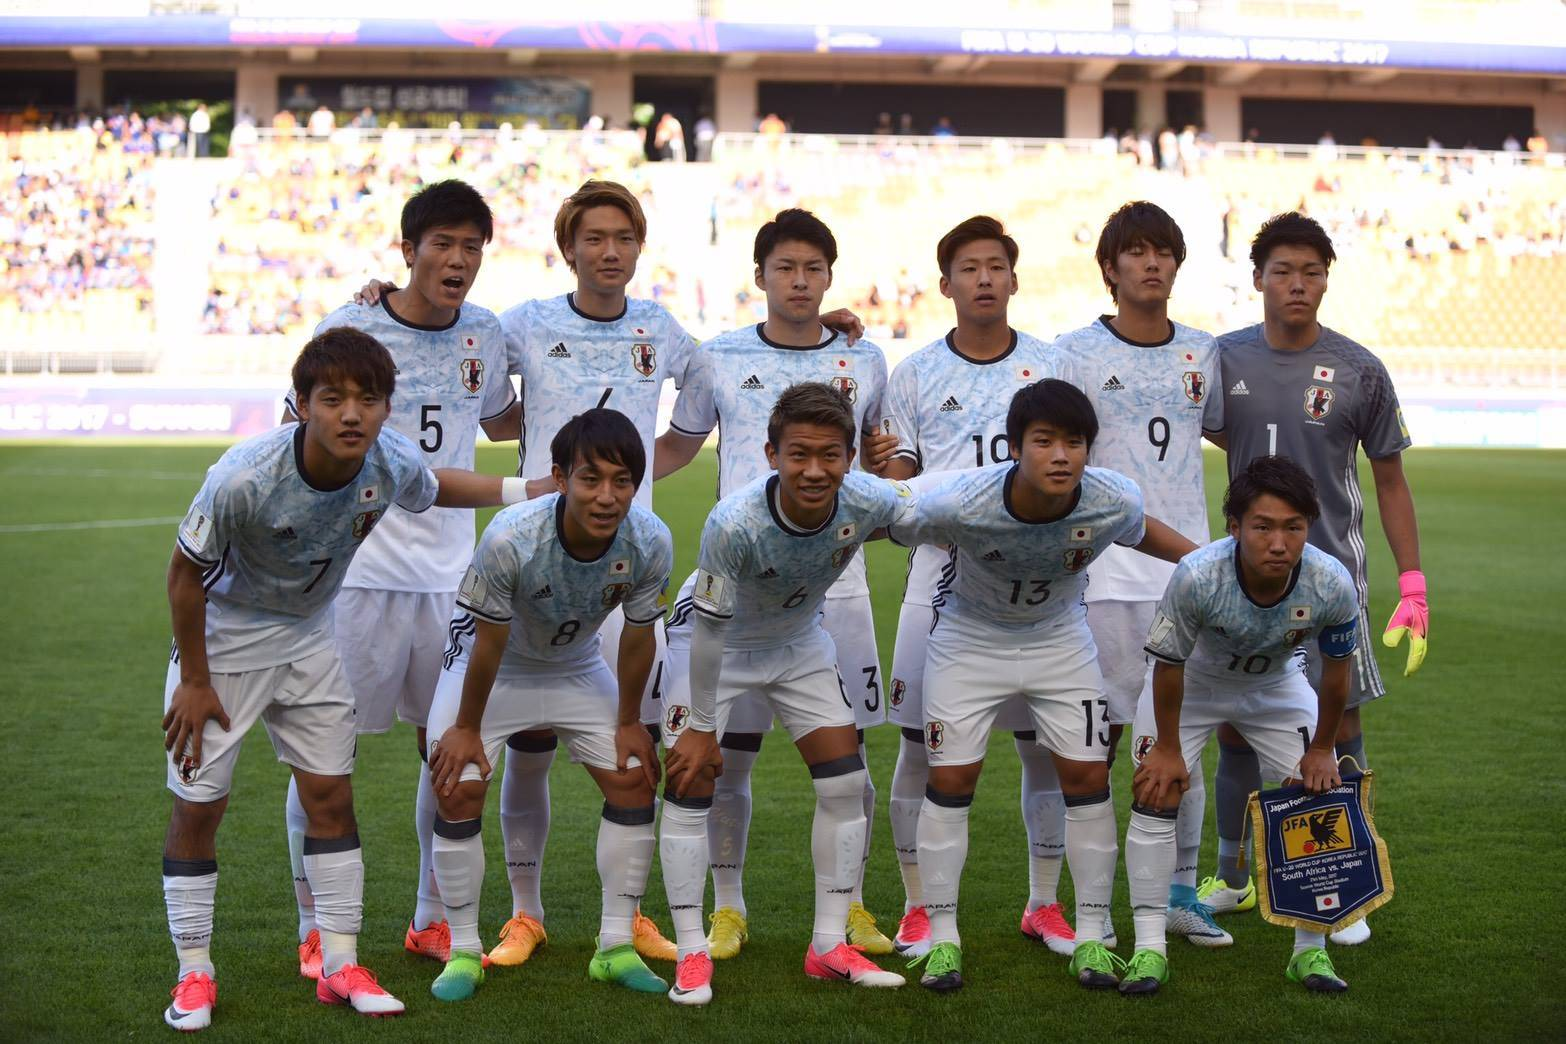 In Photos: Japan U-20 victorious in their opening match